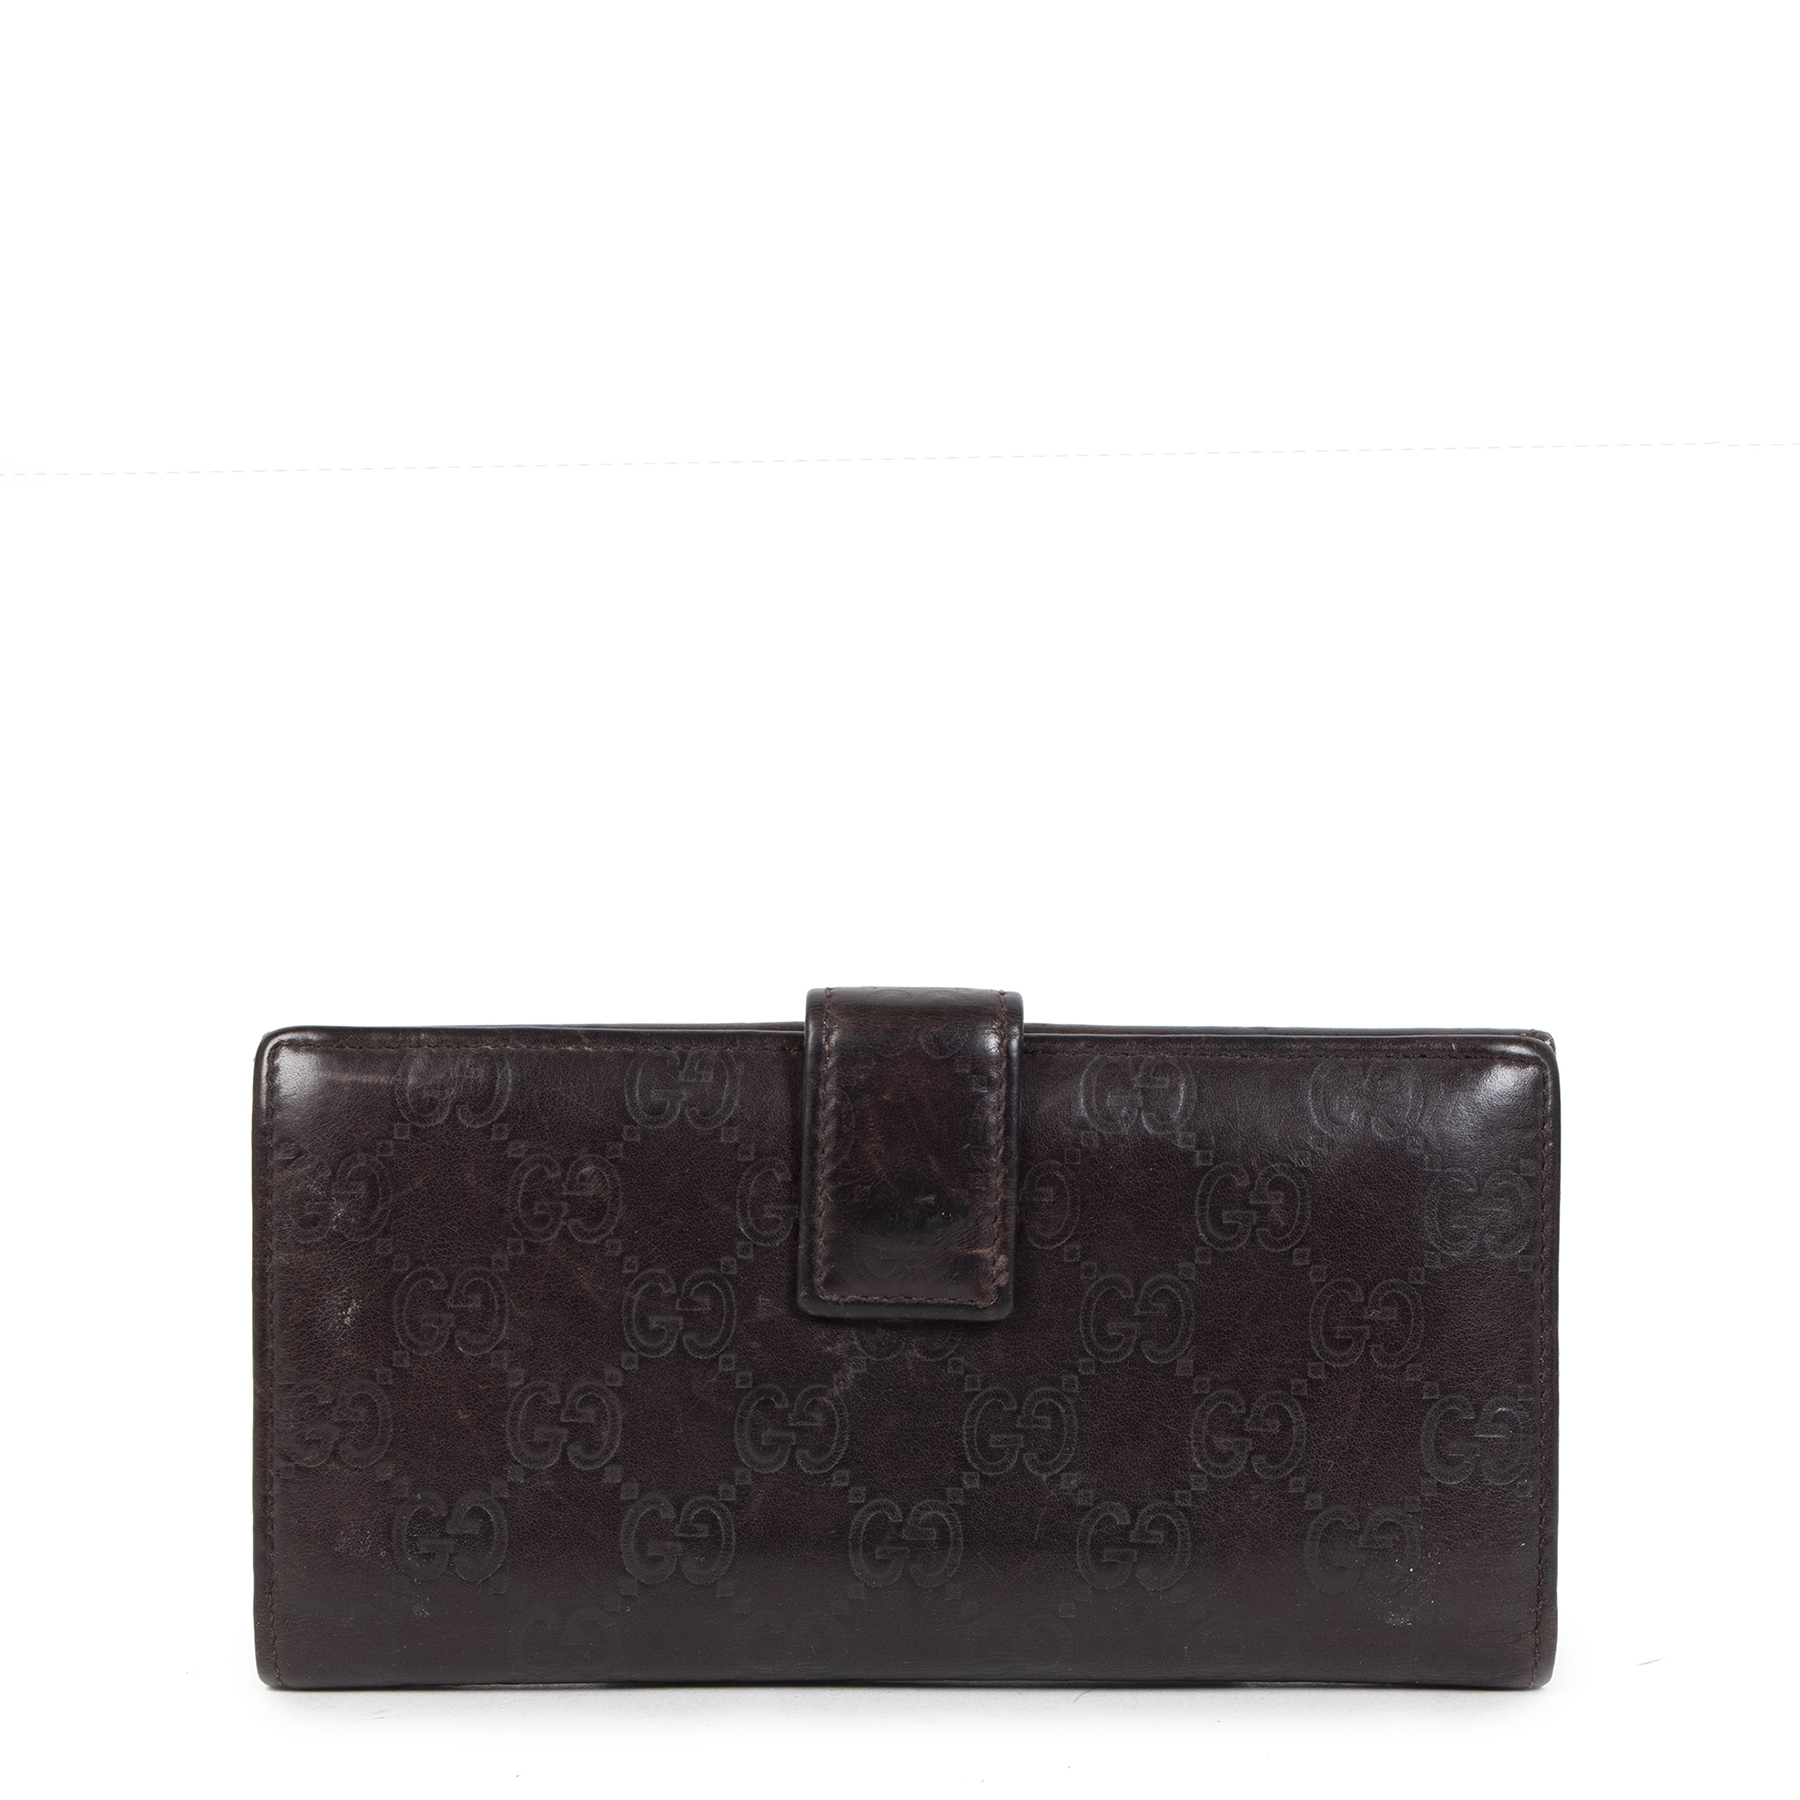 Buy authentic secondhand Gucci wallets at the right price at LabelLOV vintage webshop. Safe and secure online shopping.